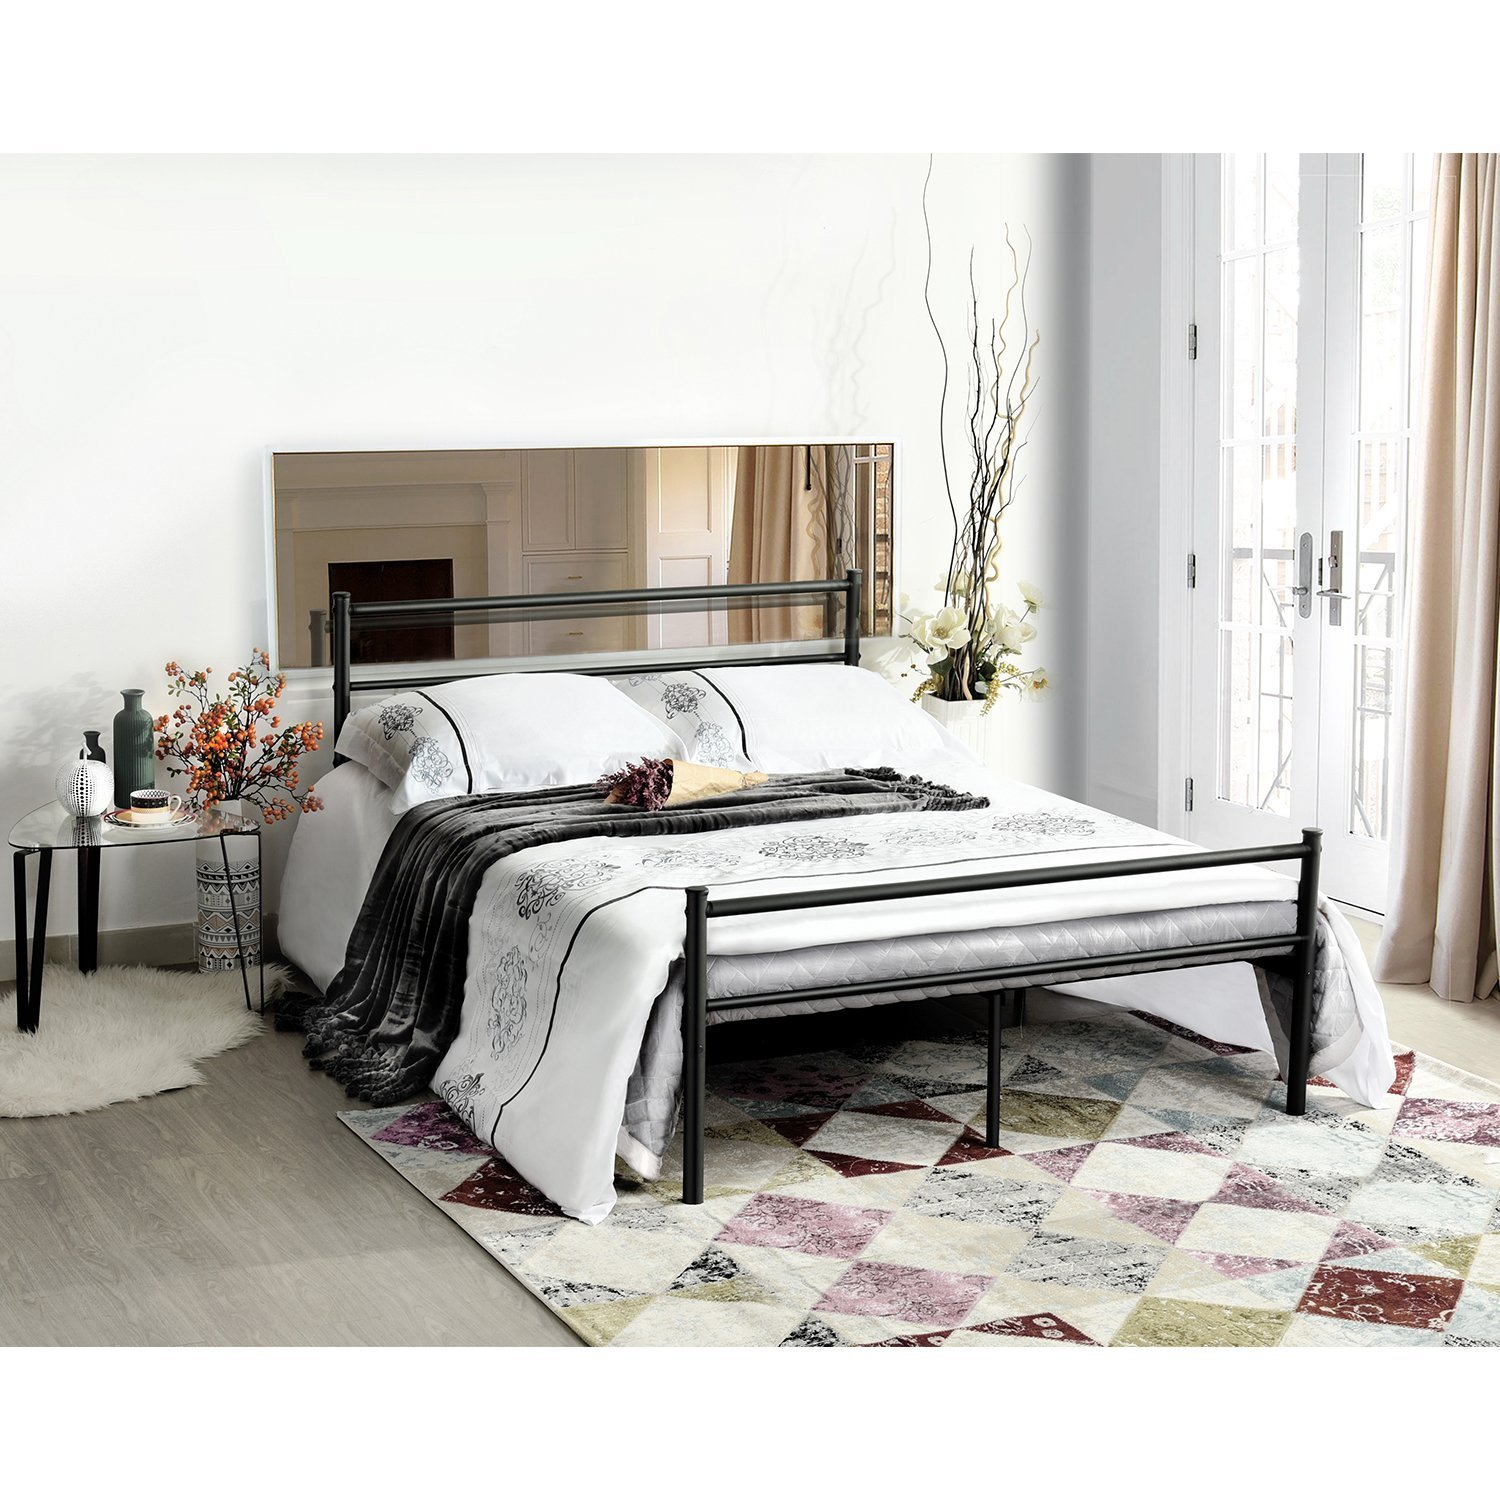 Overstock Clearance Furniture: Full Metal BedSet & Full Mattress (Weekly Special